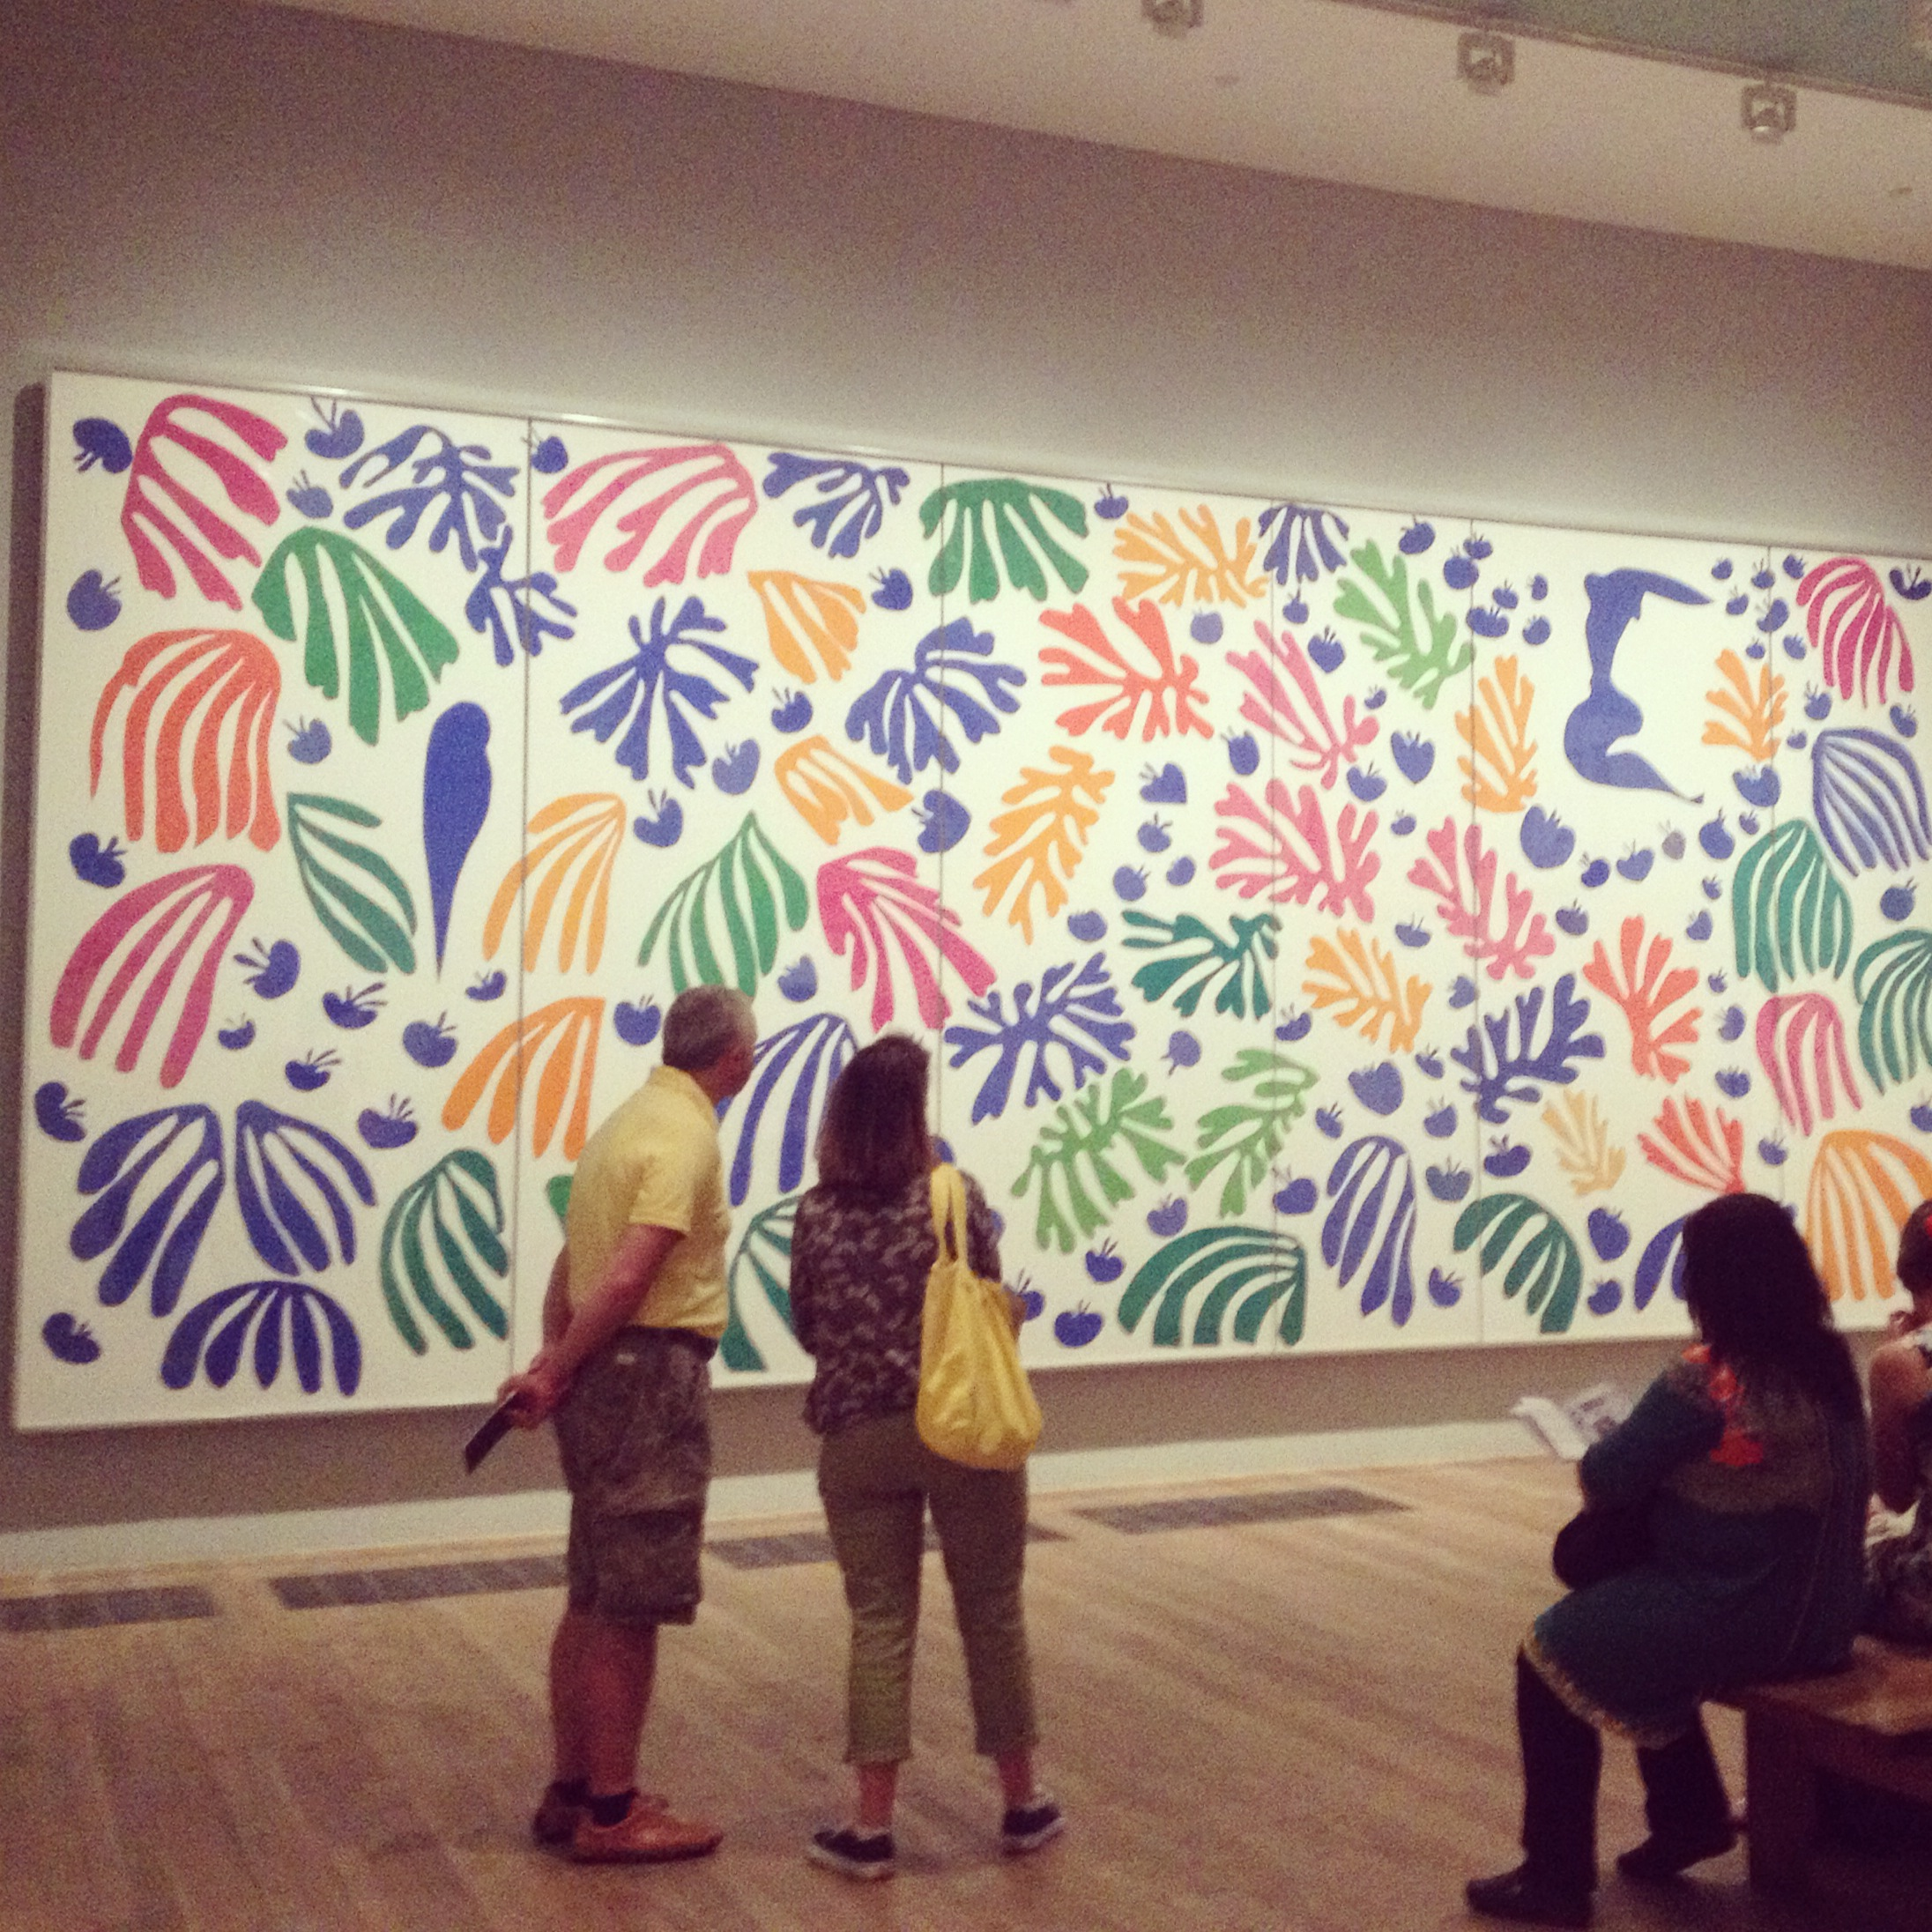 Matisse Exhibition at the Tate.